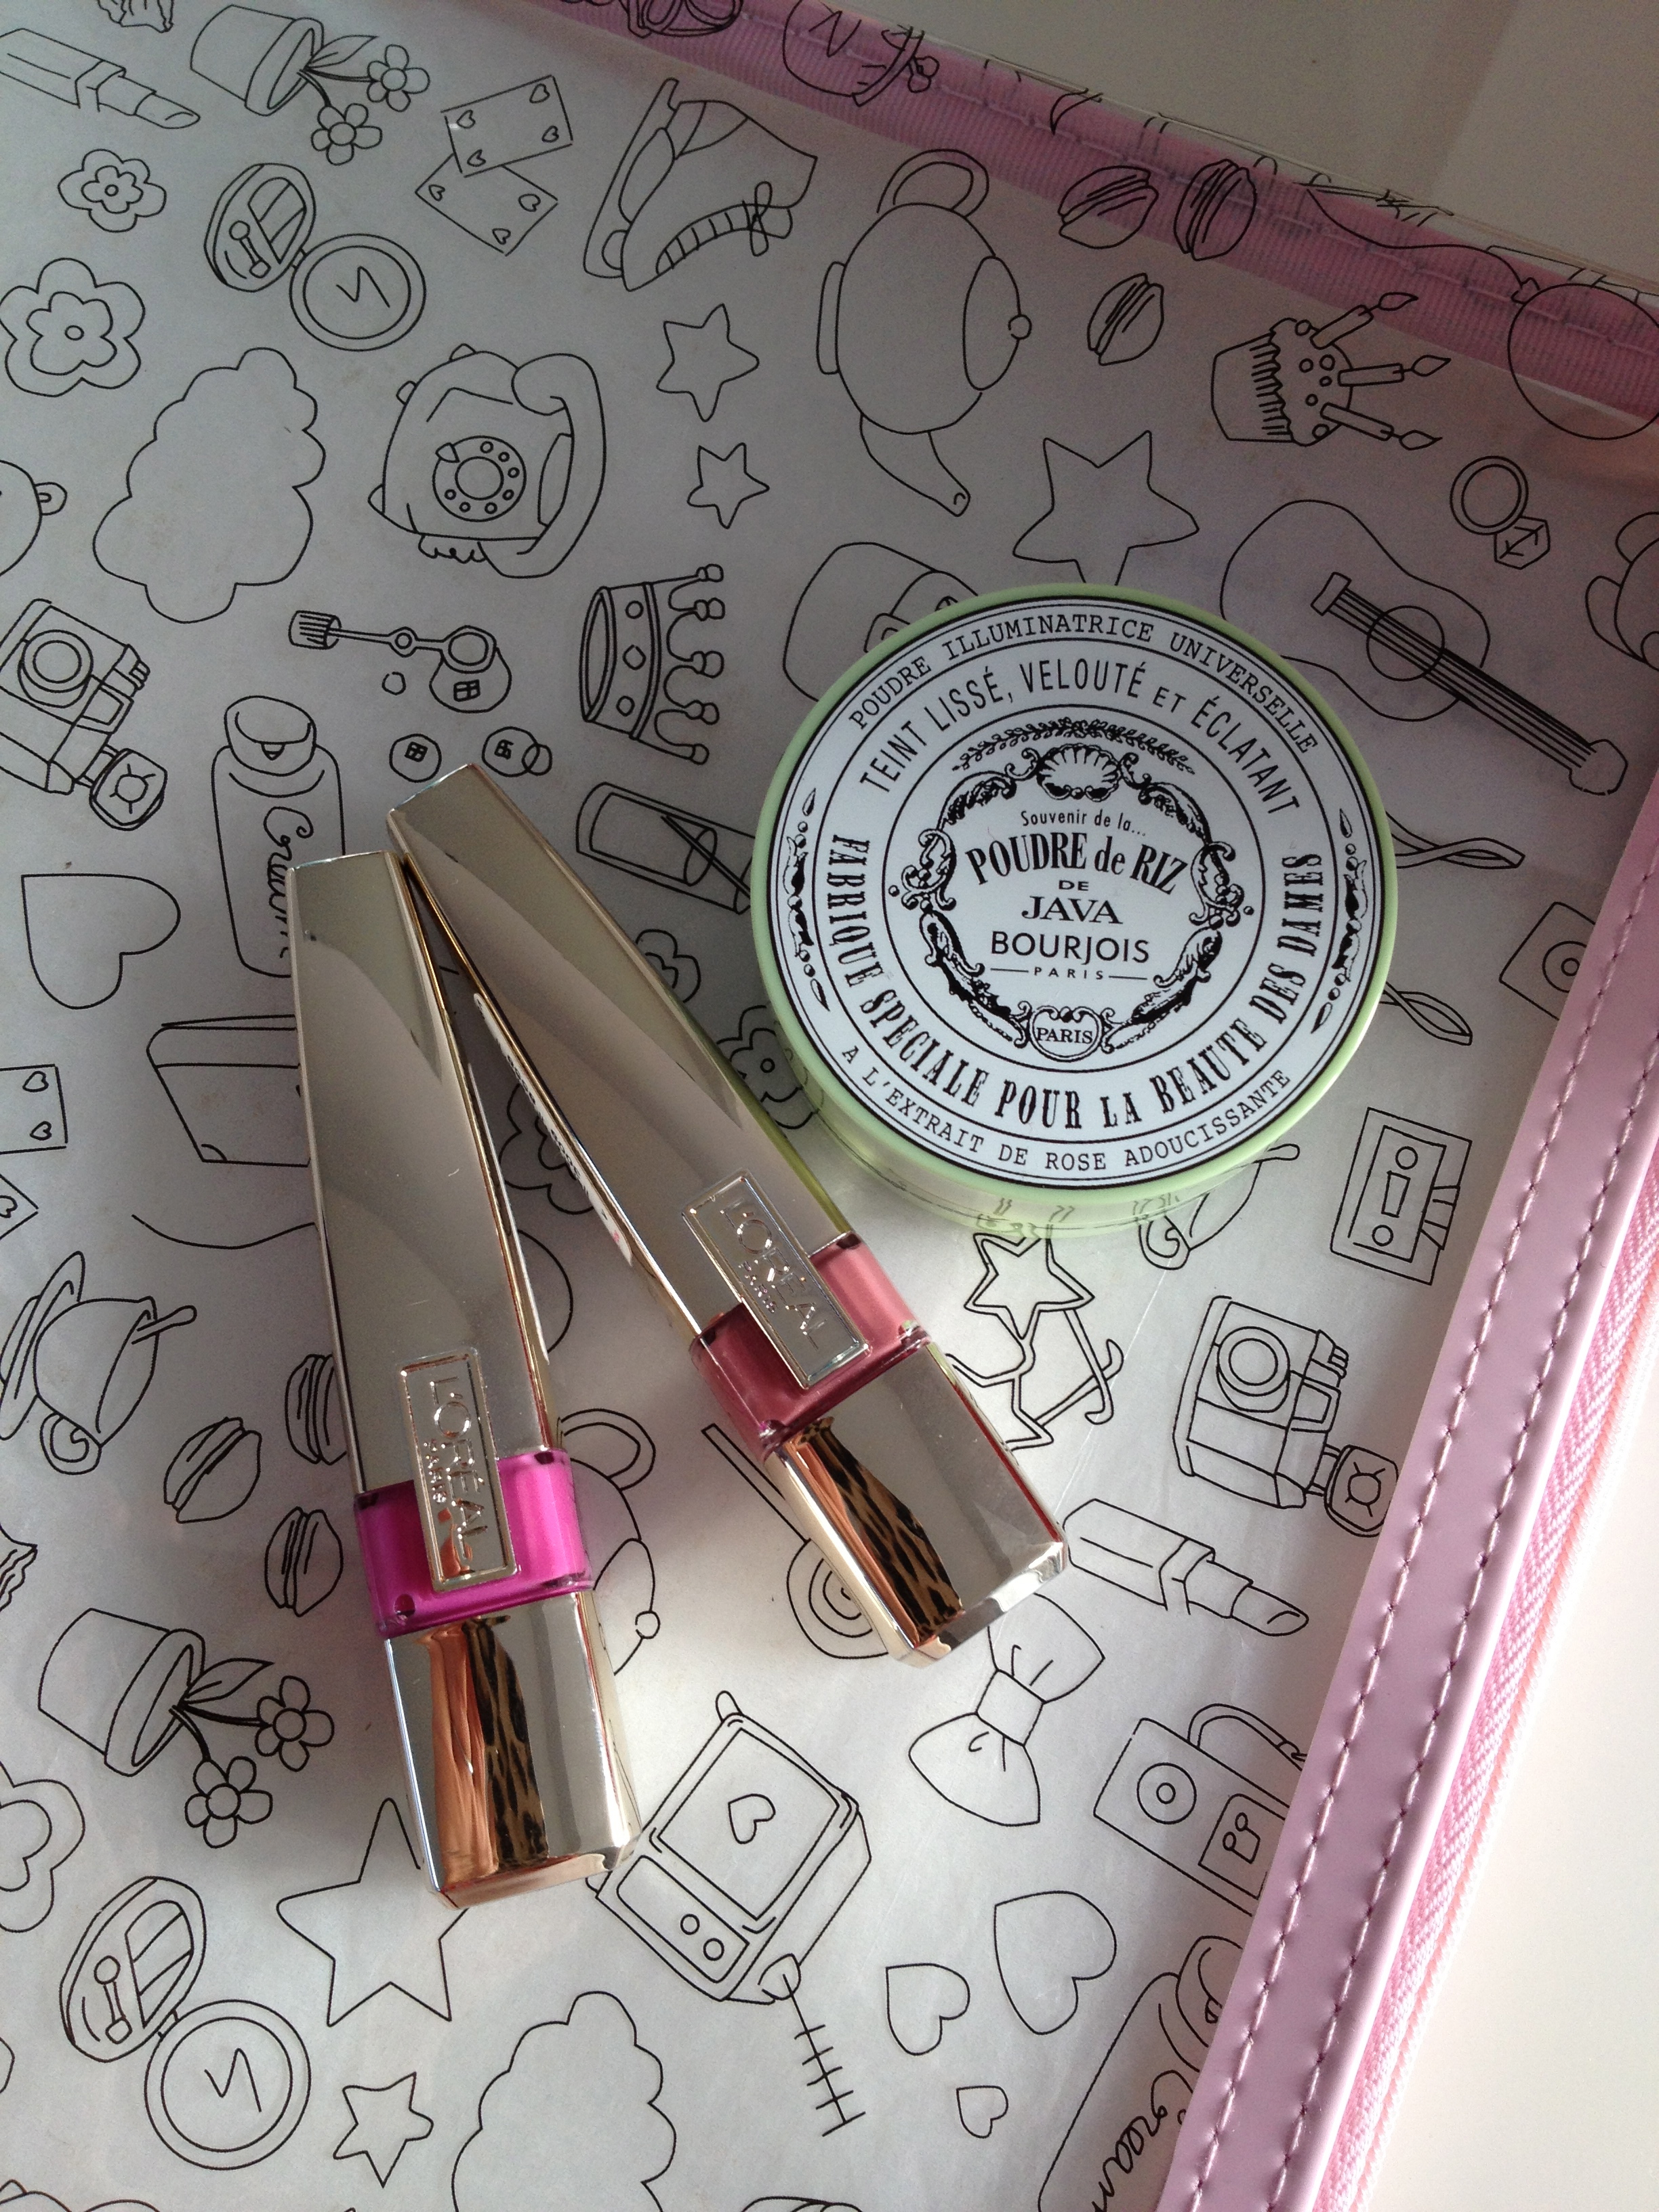 Wash bag from Galeries Lafayette featuring illustrations by the Cherry Blossom Girl, one of my favourite bloggers